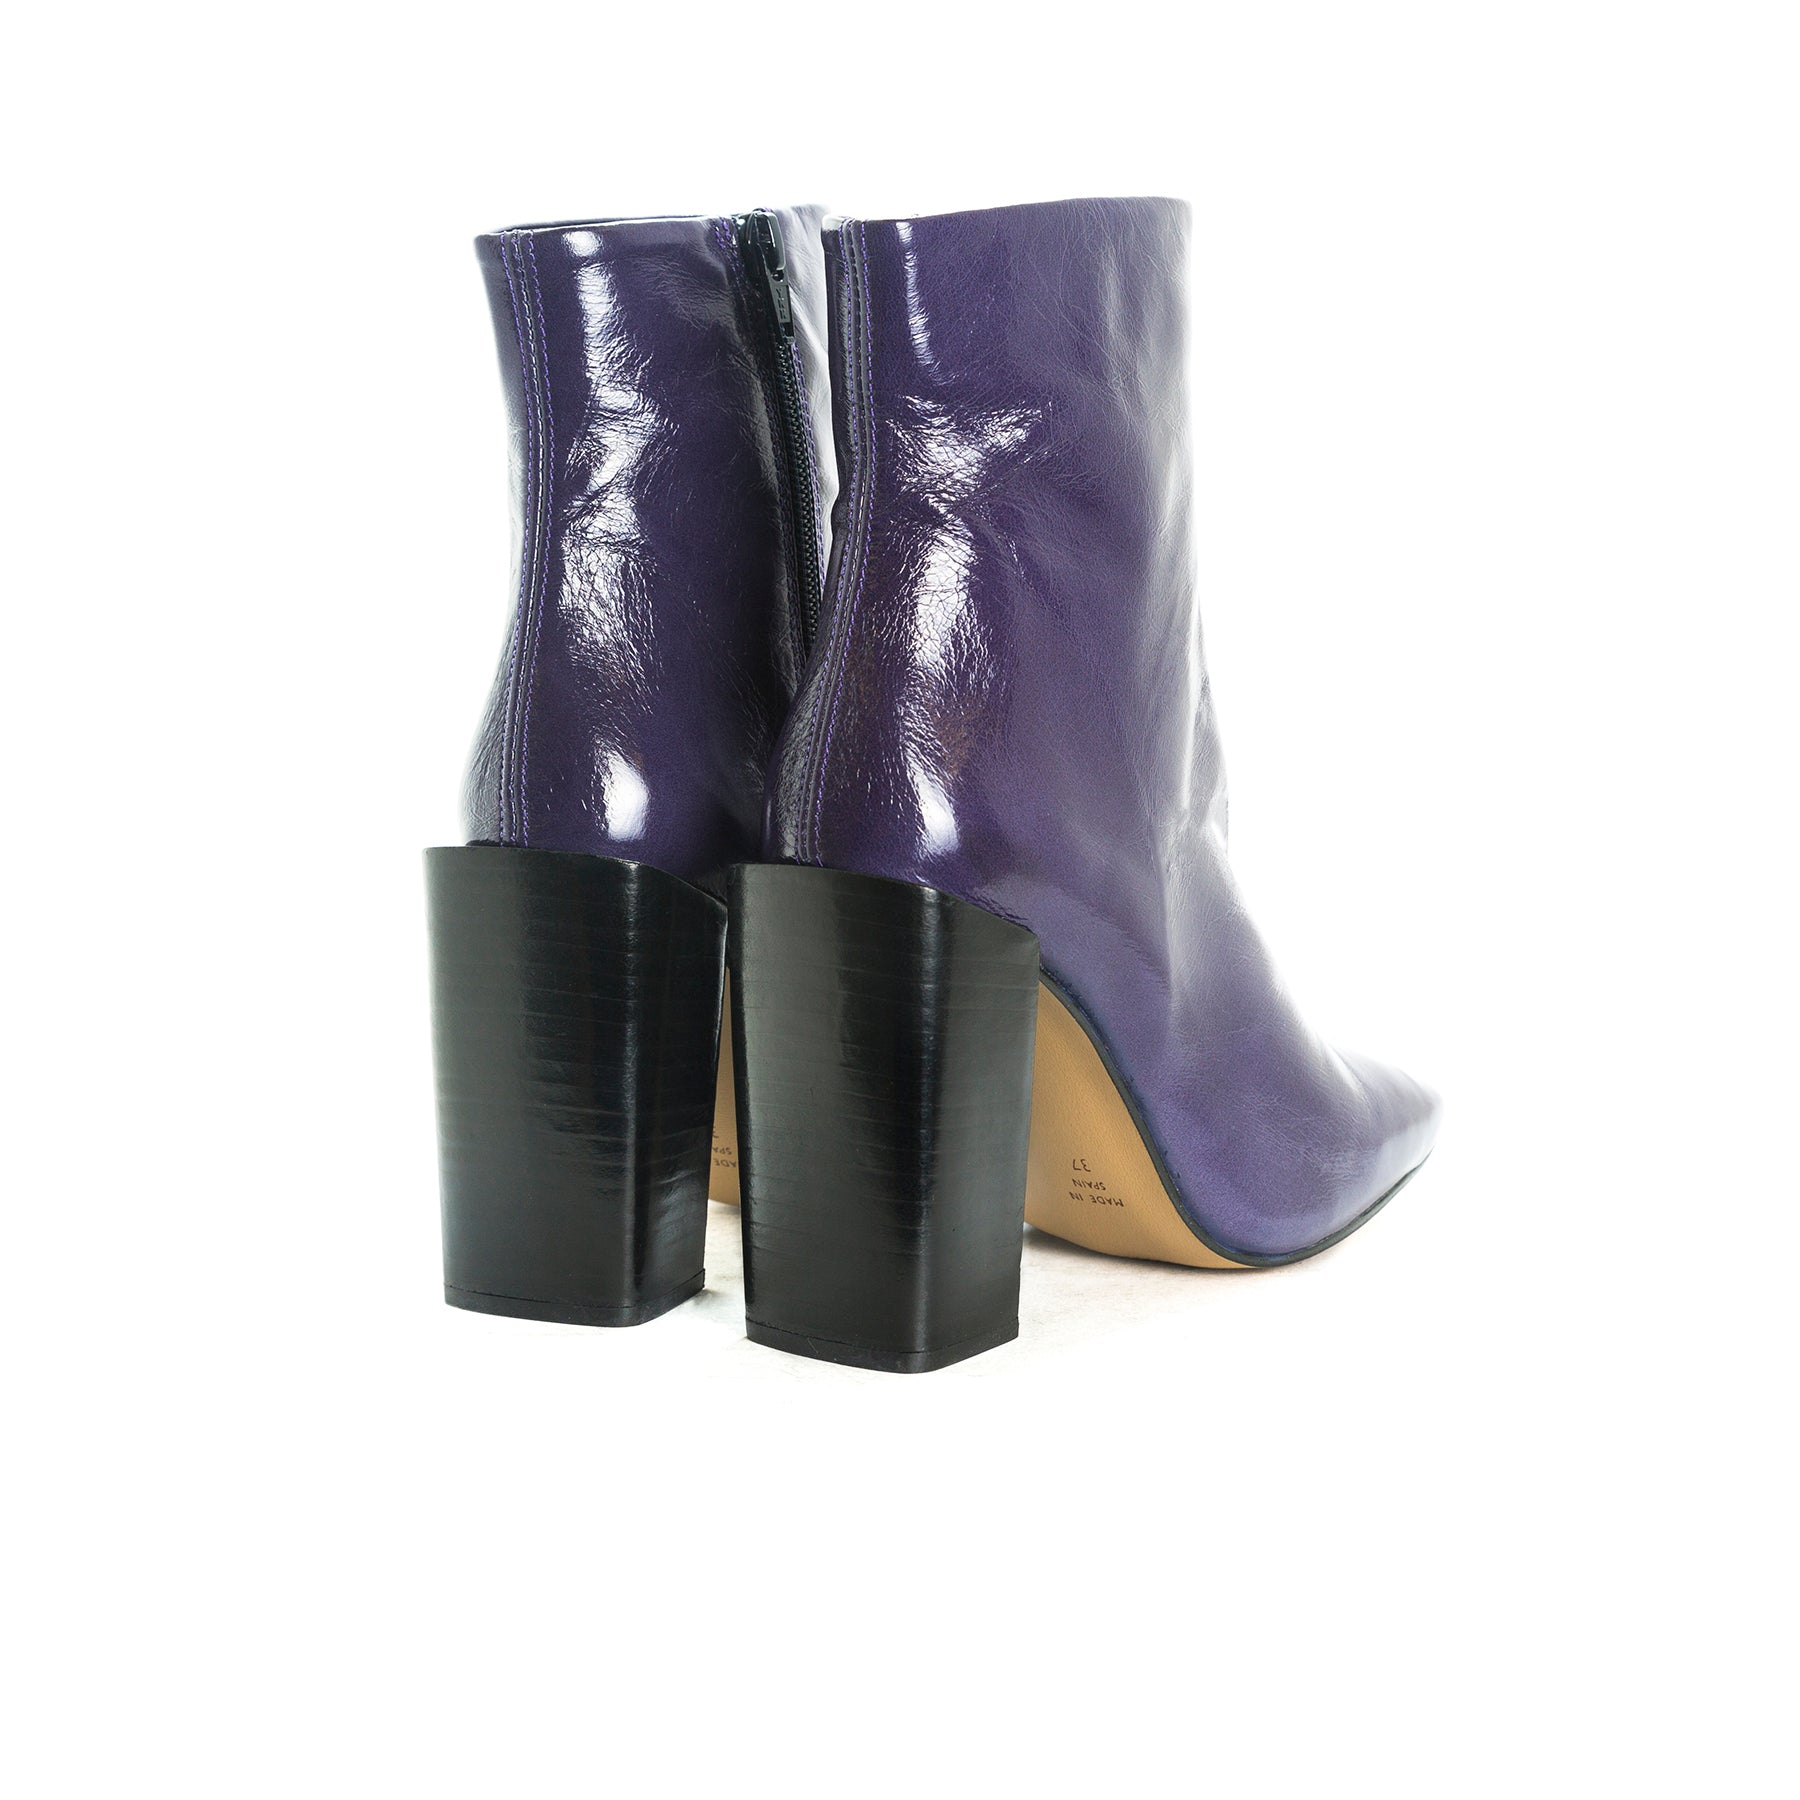 Zicos Purple Naplack Boots